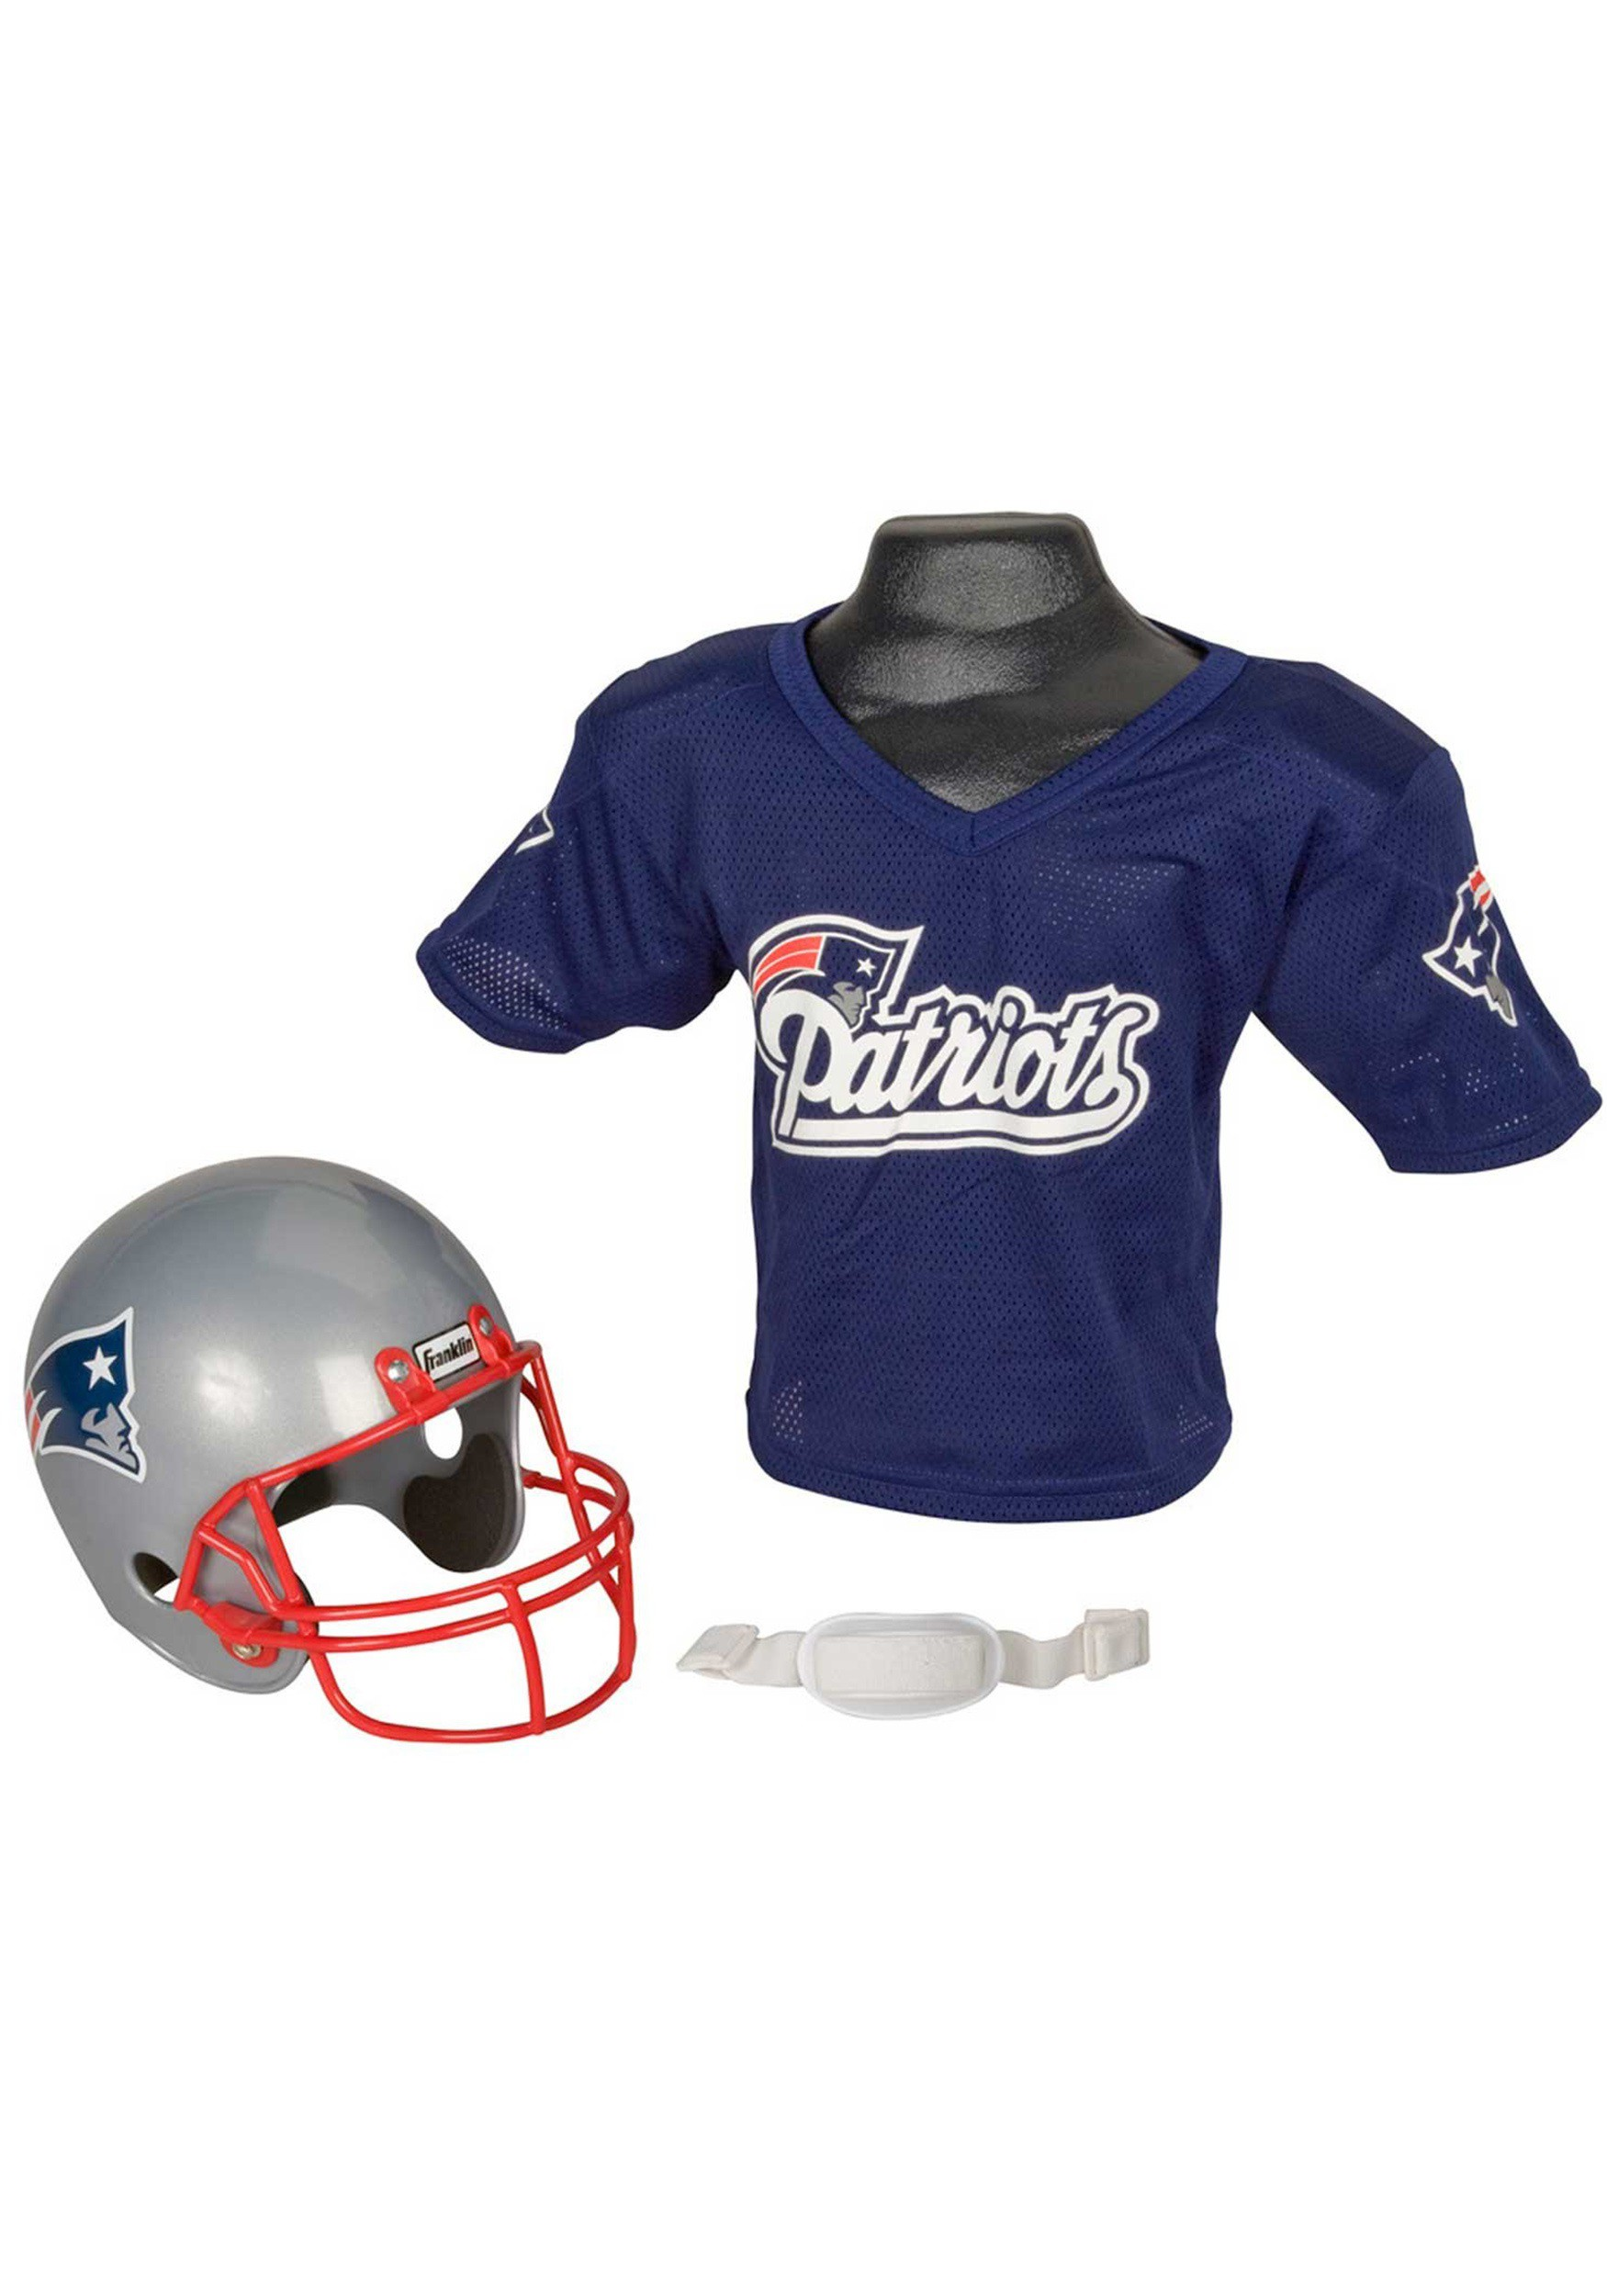 11d5179d8 Child NFL New England Patriots Helmet and Jersey Costume Set